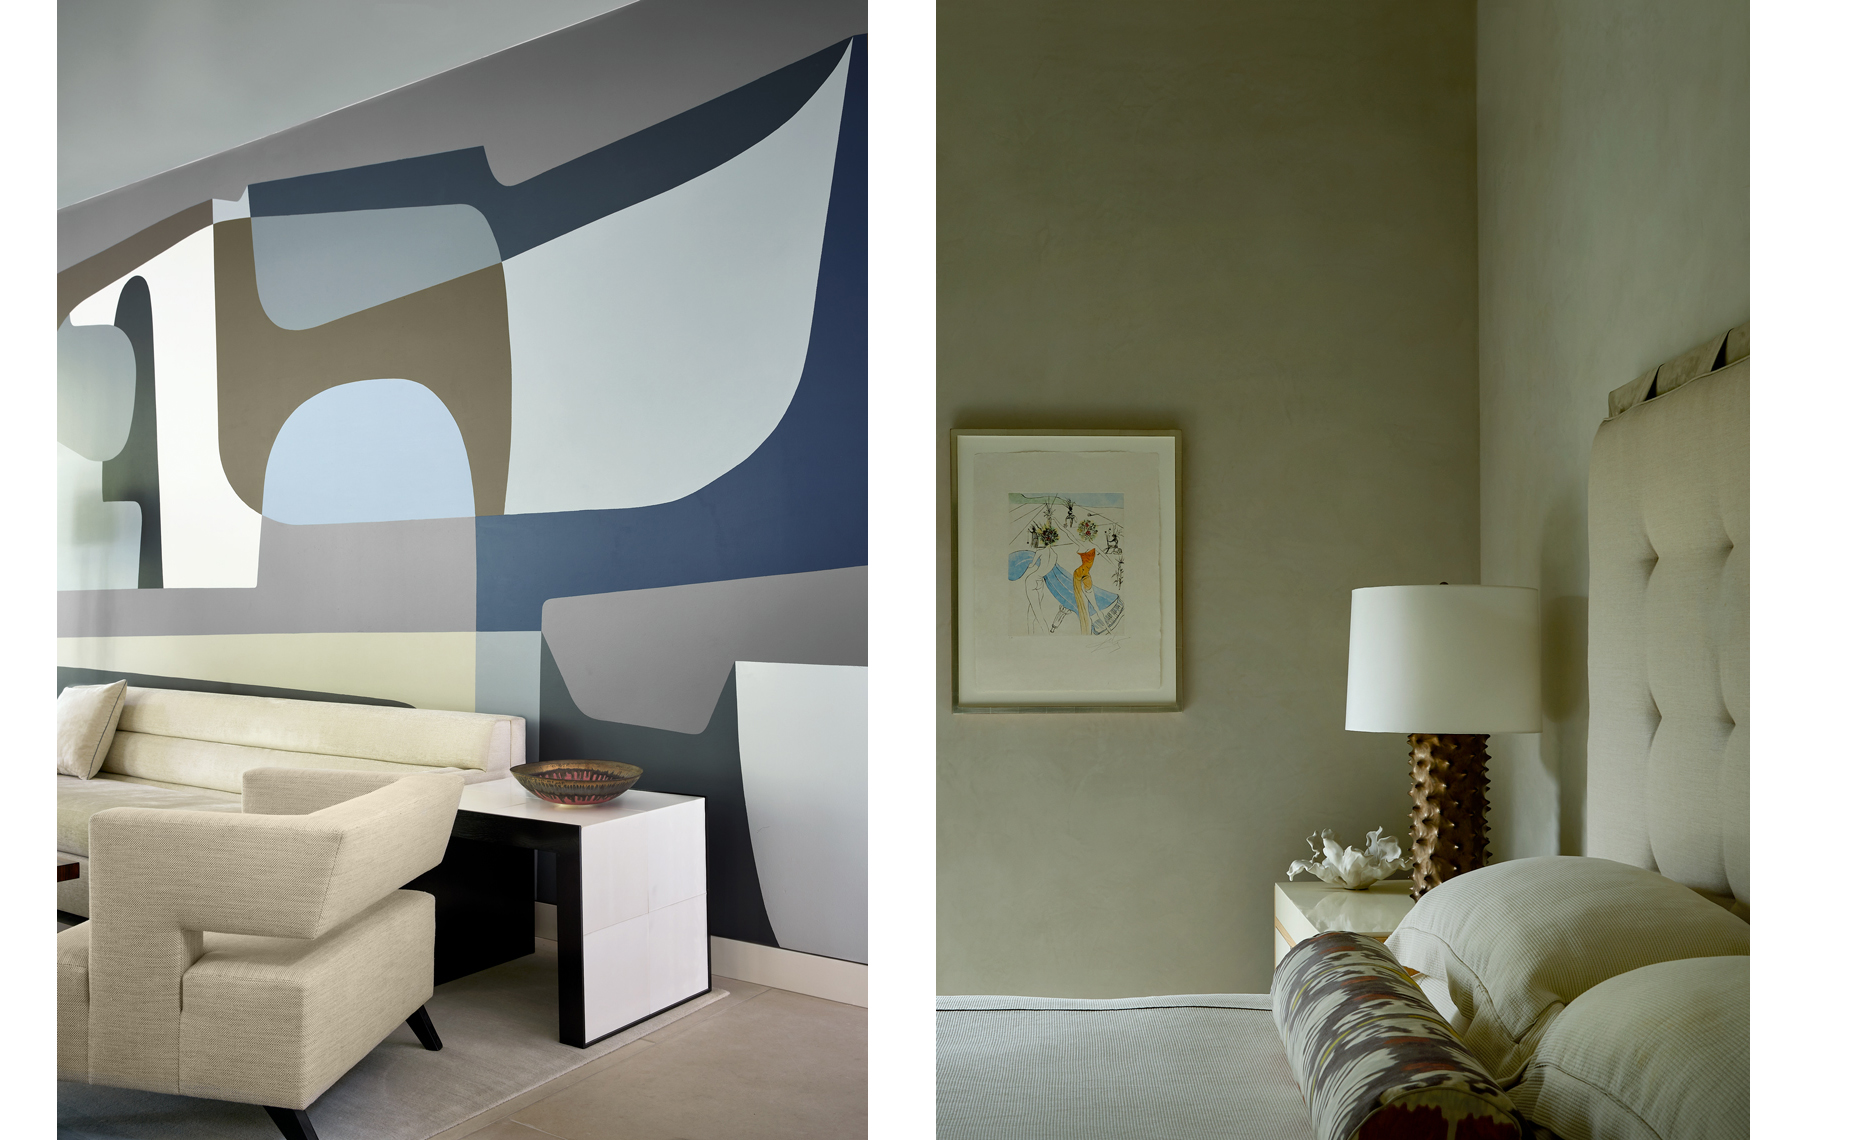 dror baldinger fair architectural photography contemporary interiors mural